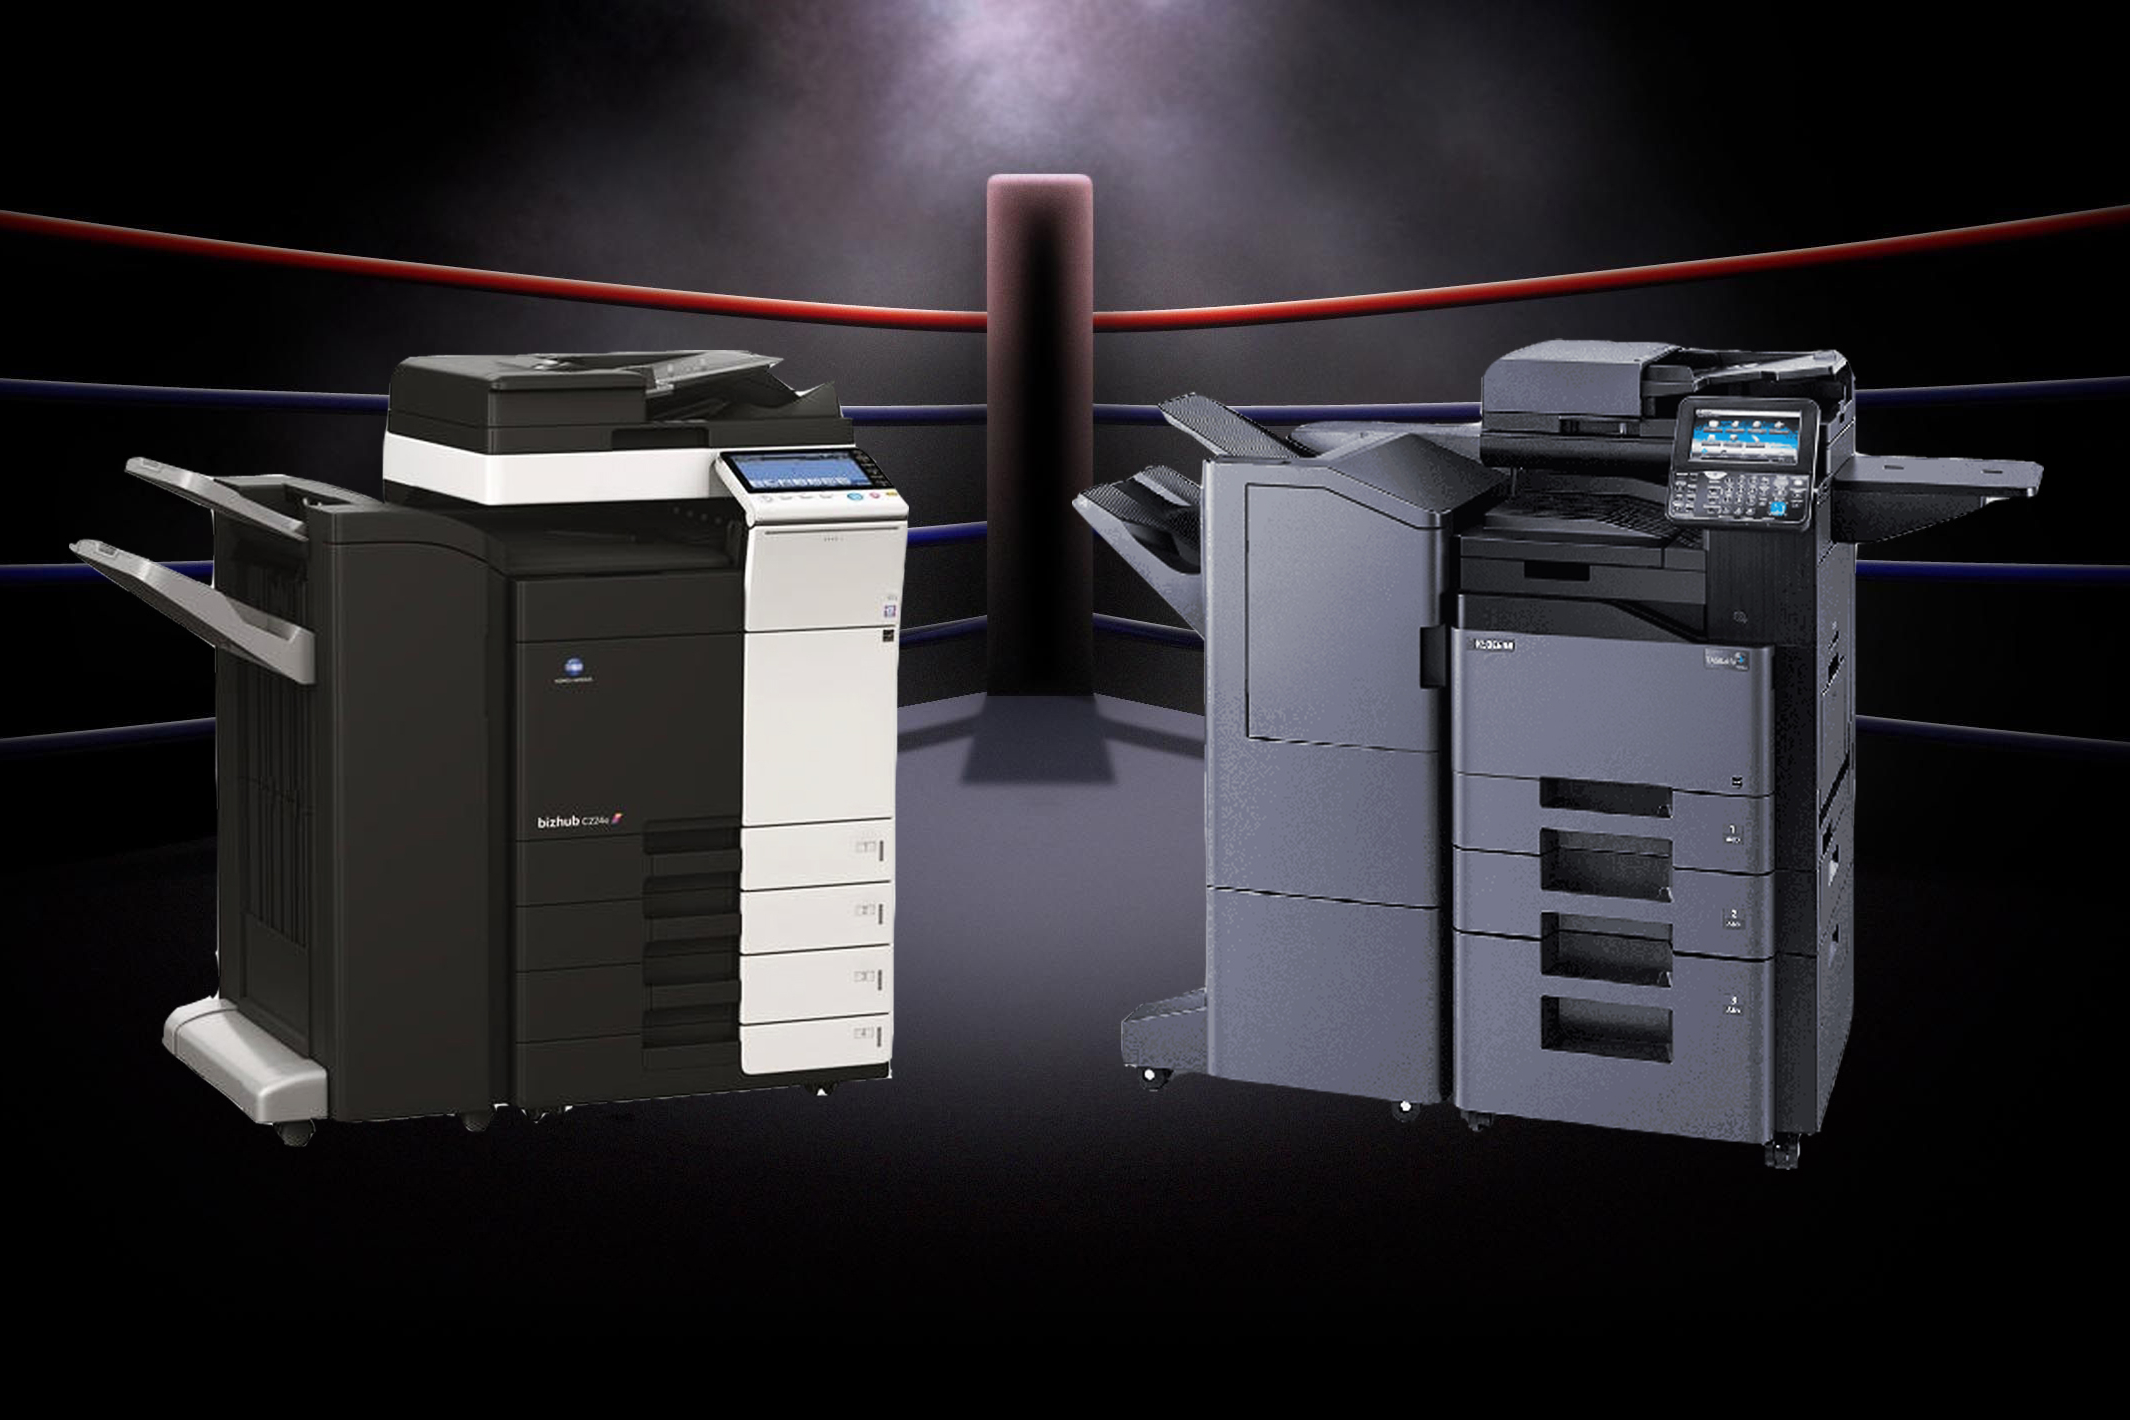 Why Kyocera Copiers Are Better Than Konica Minolta